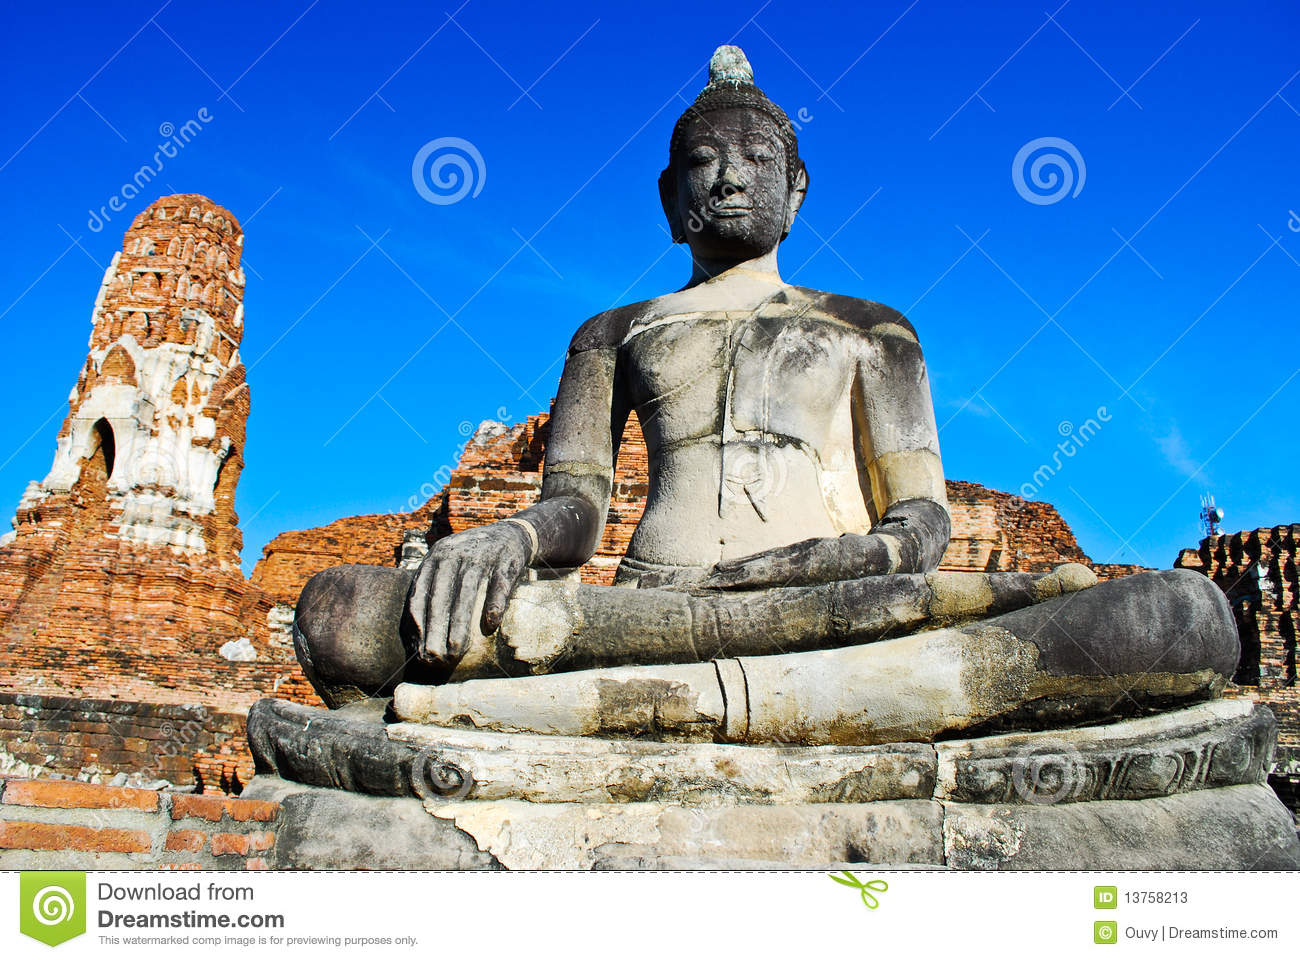 Buddha in Ancient Ayutthaya on clear sky, Wat Mahathat. Thailand.